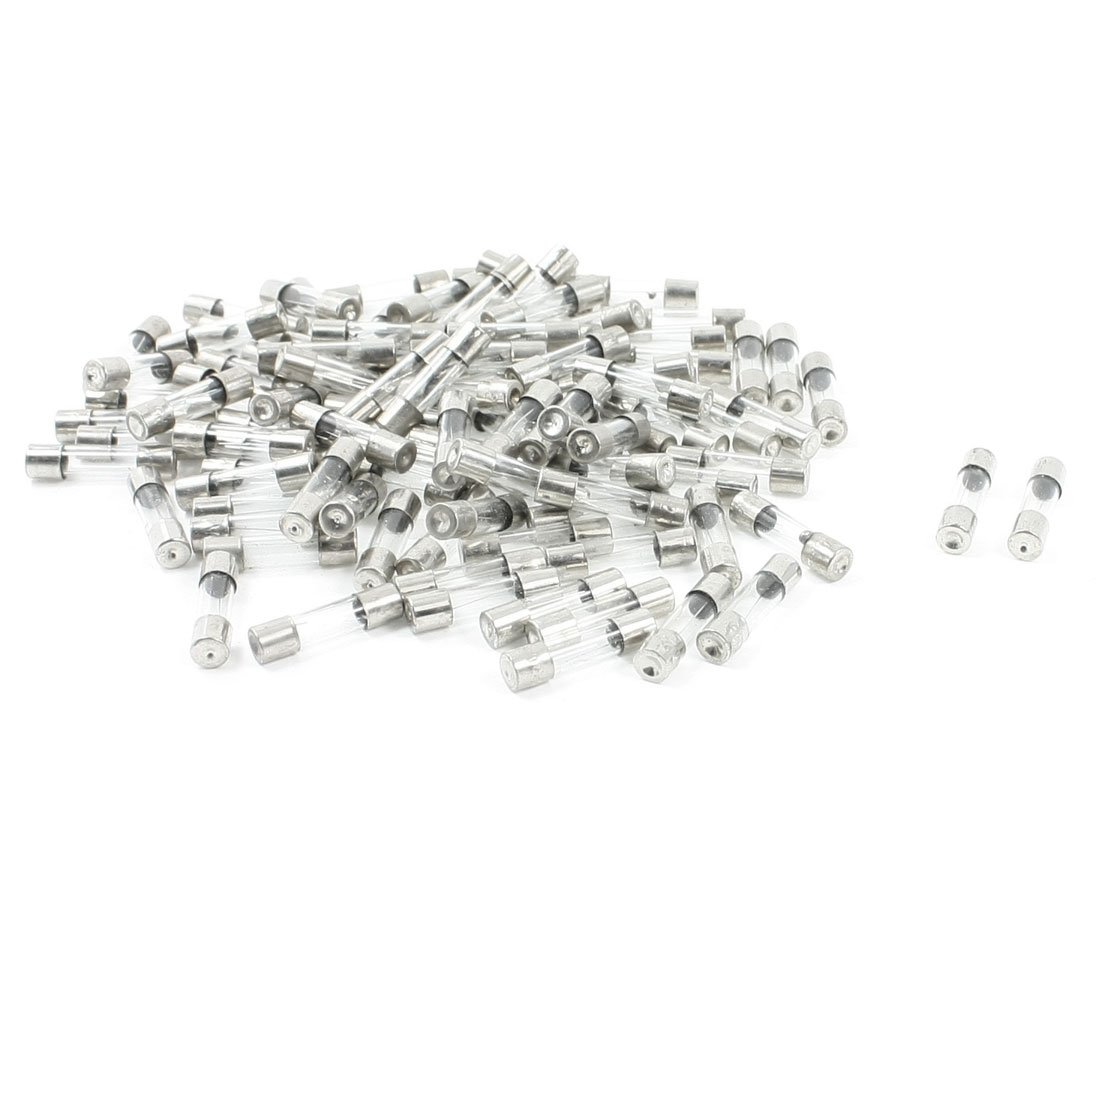 Ews 100 Pcs Low Breaking Capacity 5 X 20mm Fast Blow Glass Tube Fuses 4a 250v In Fuses From Home